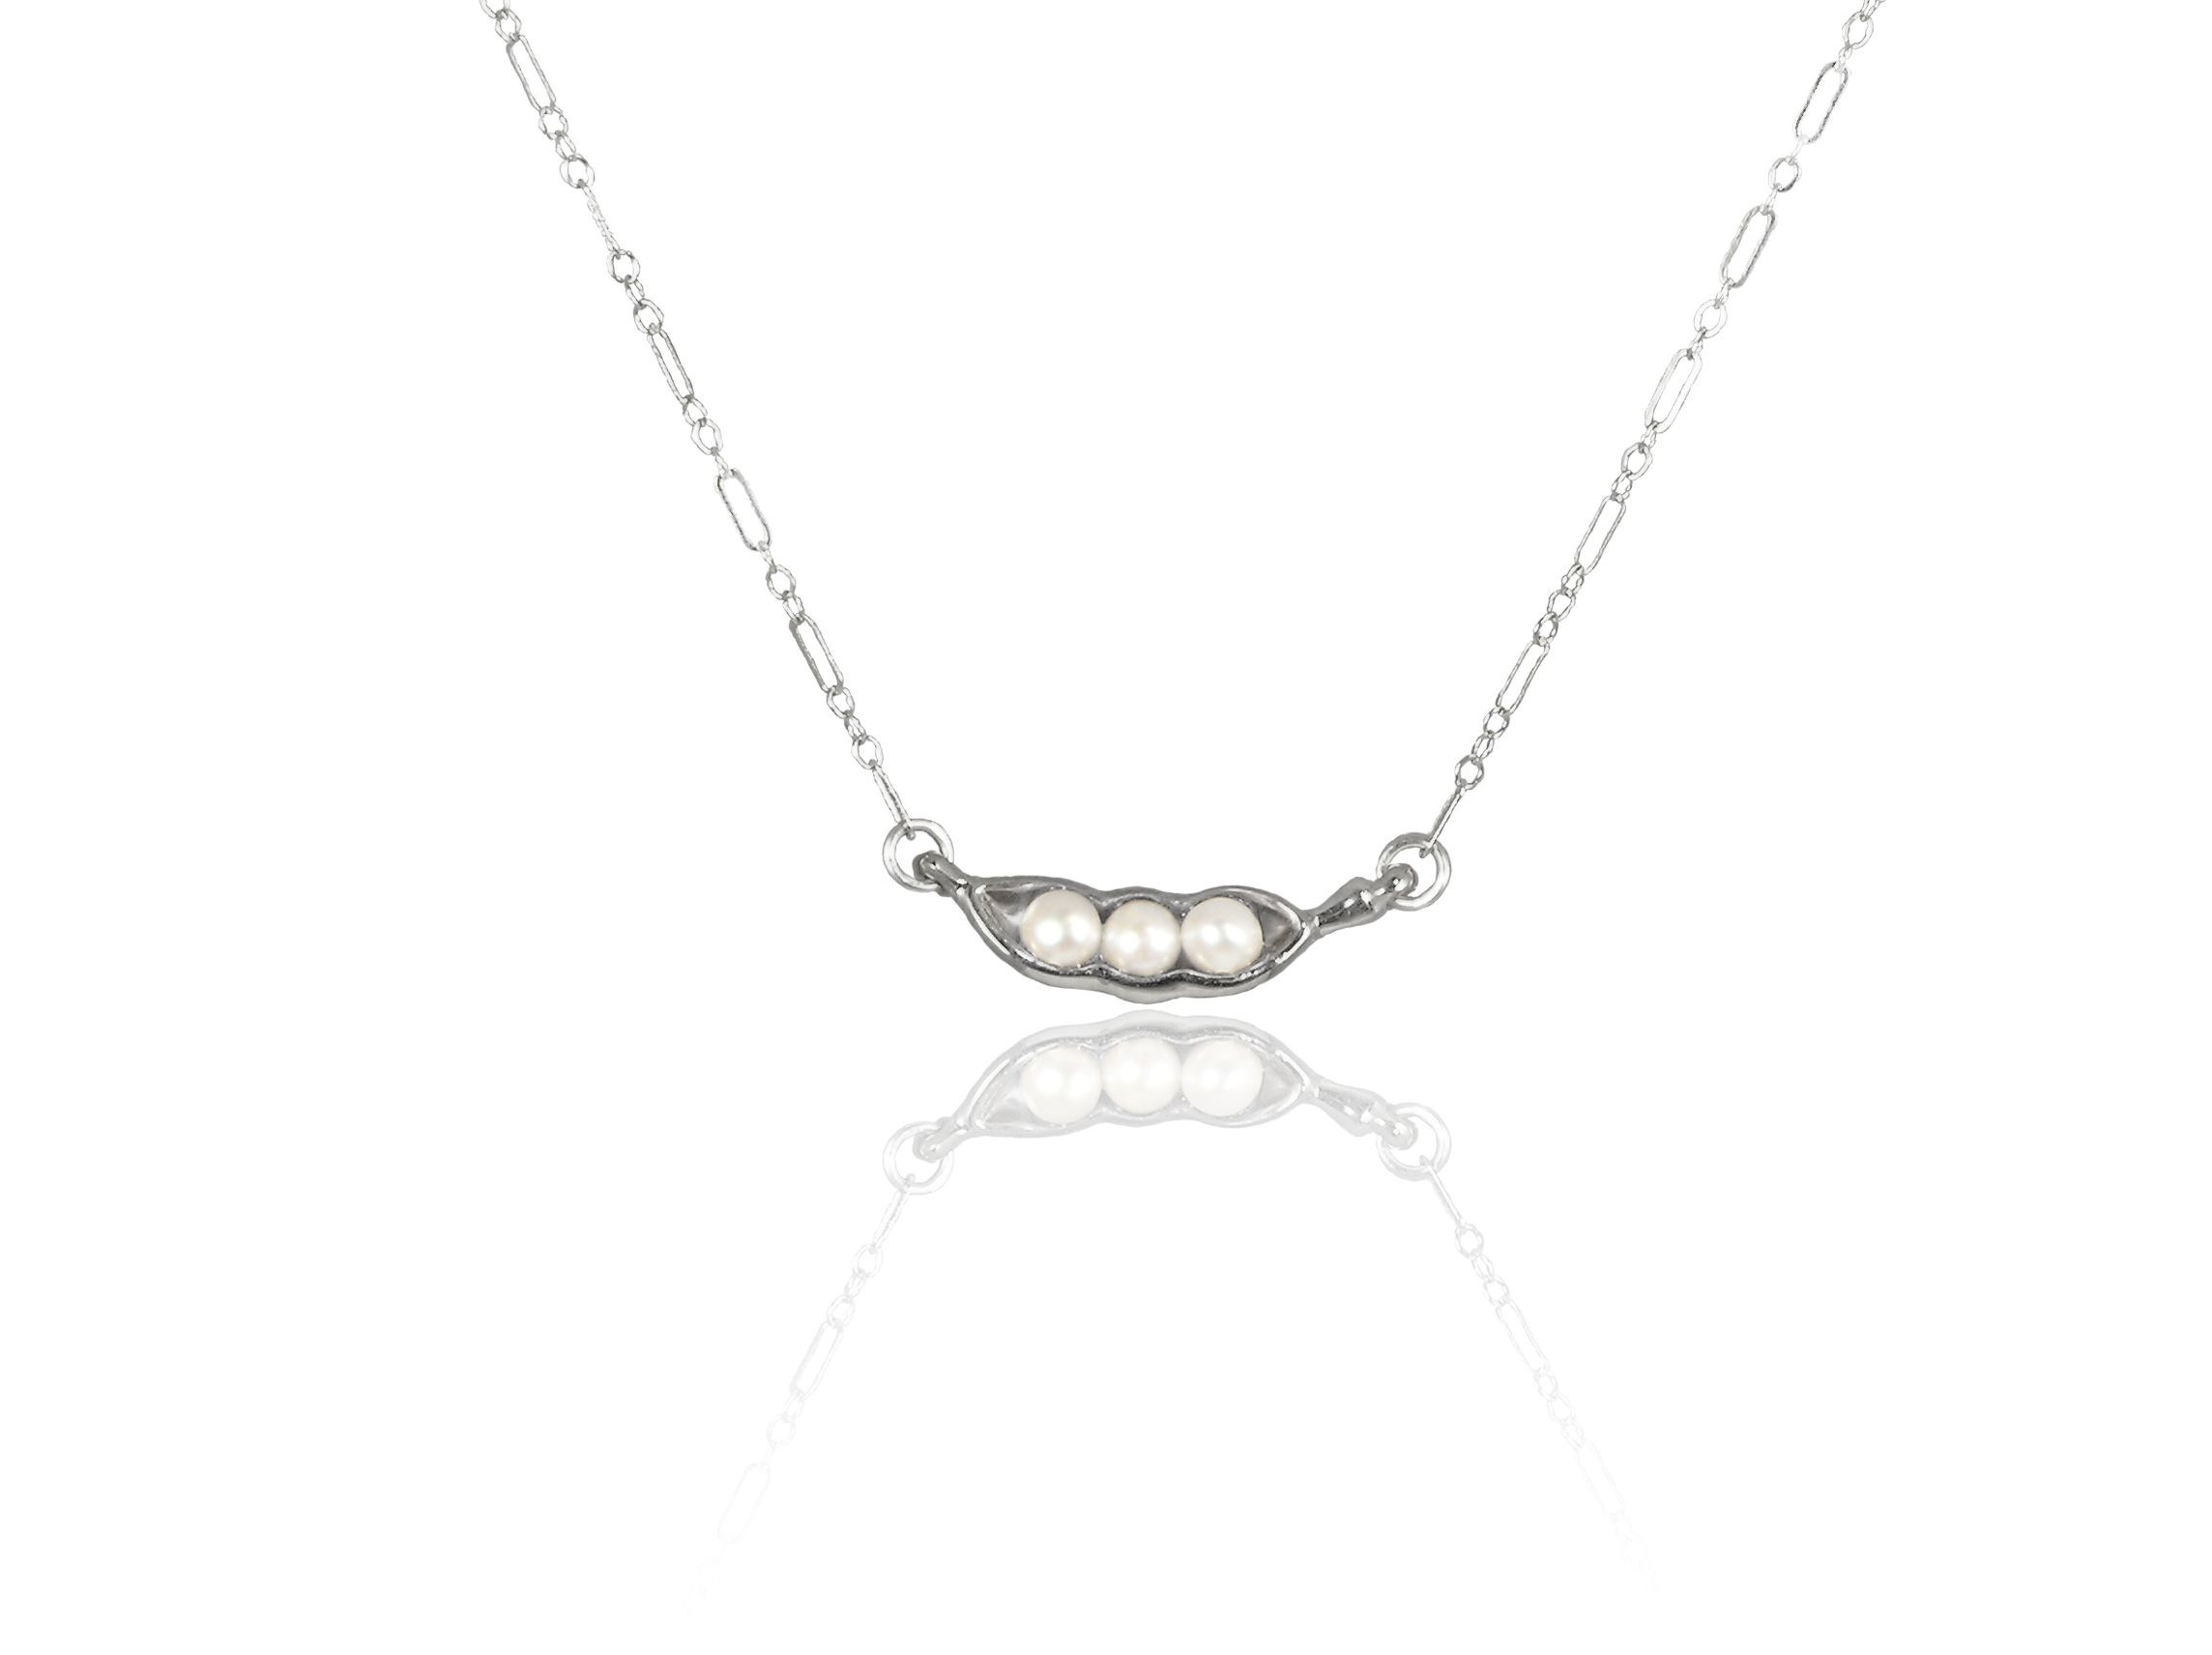 pendant diamond white south aa index sea pearl pearls